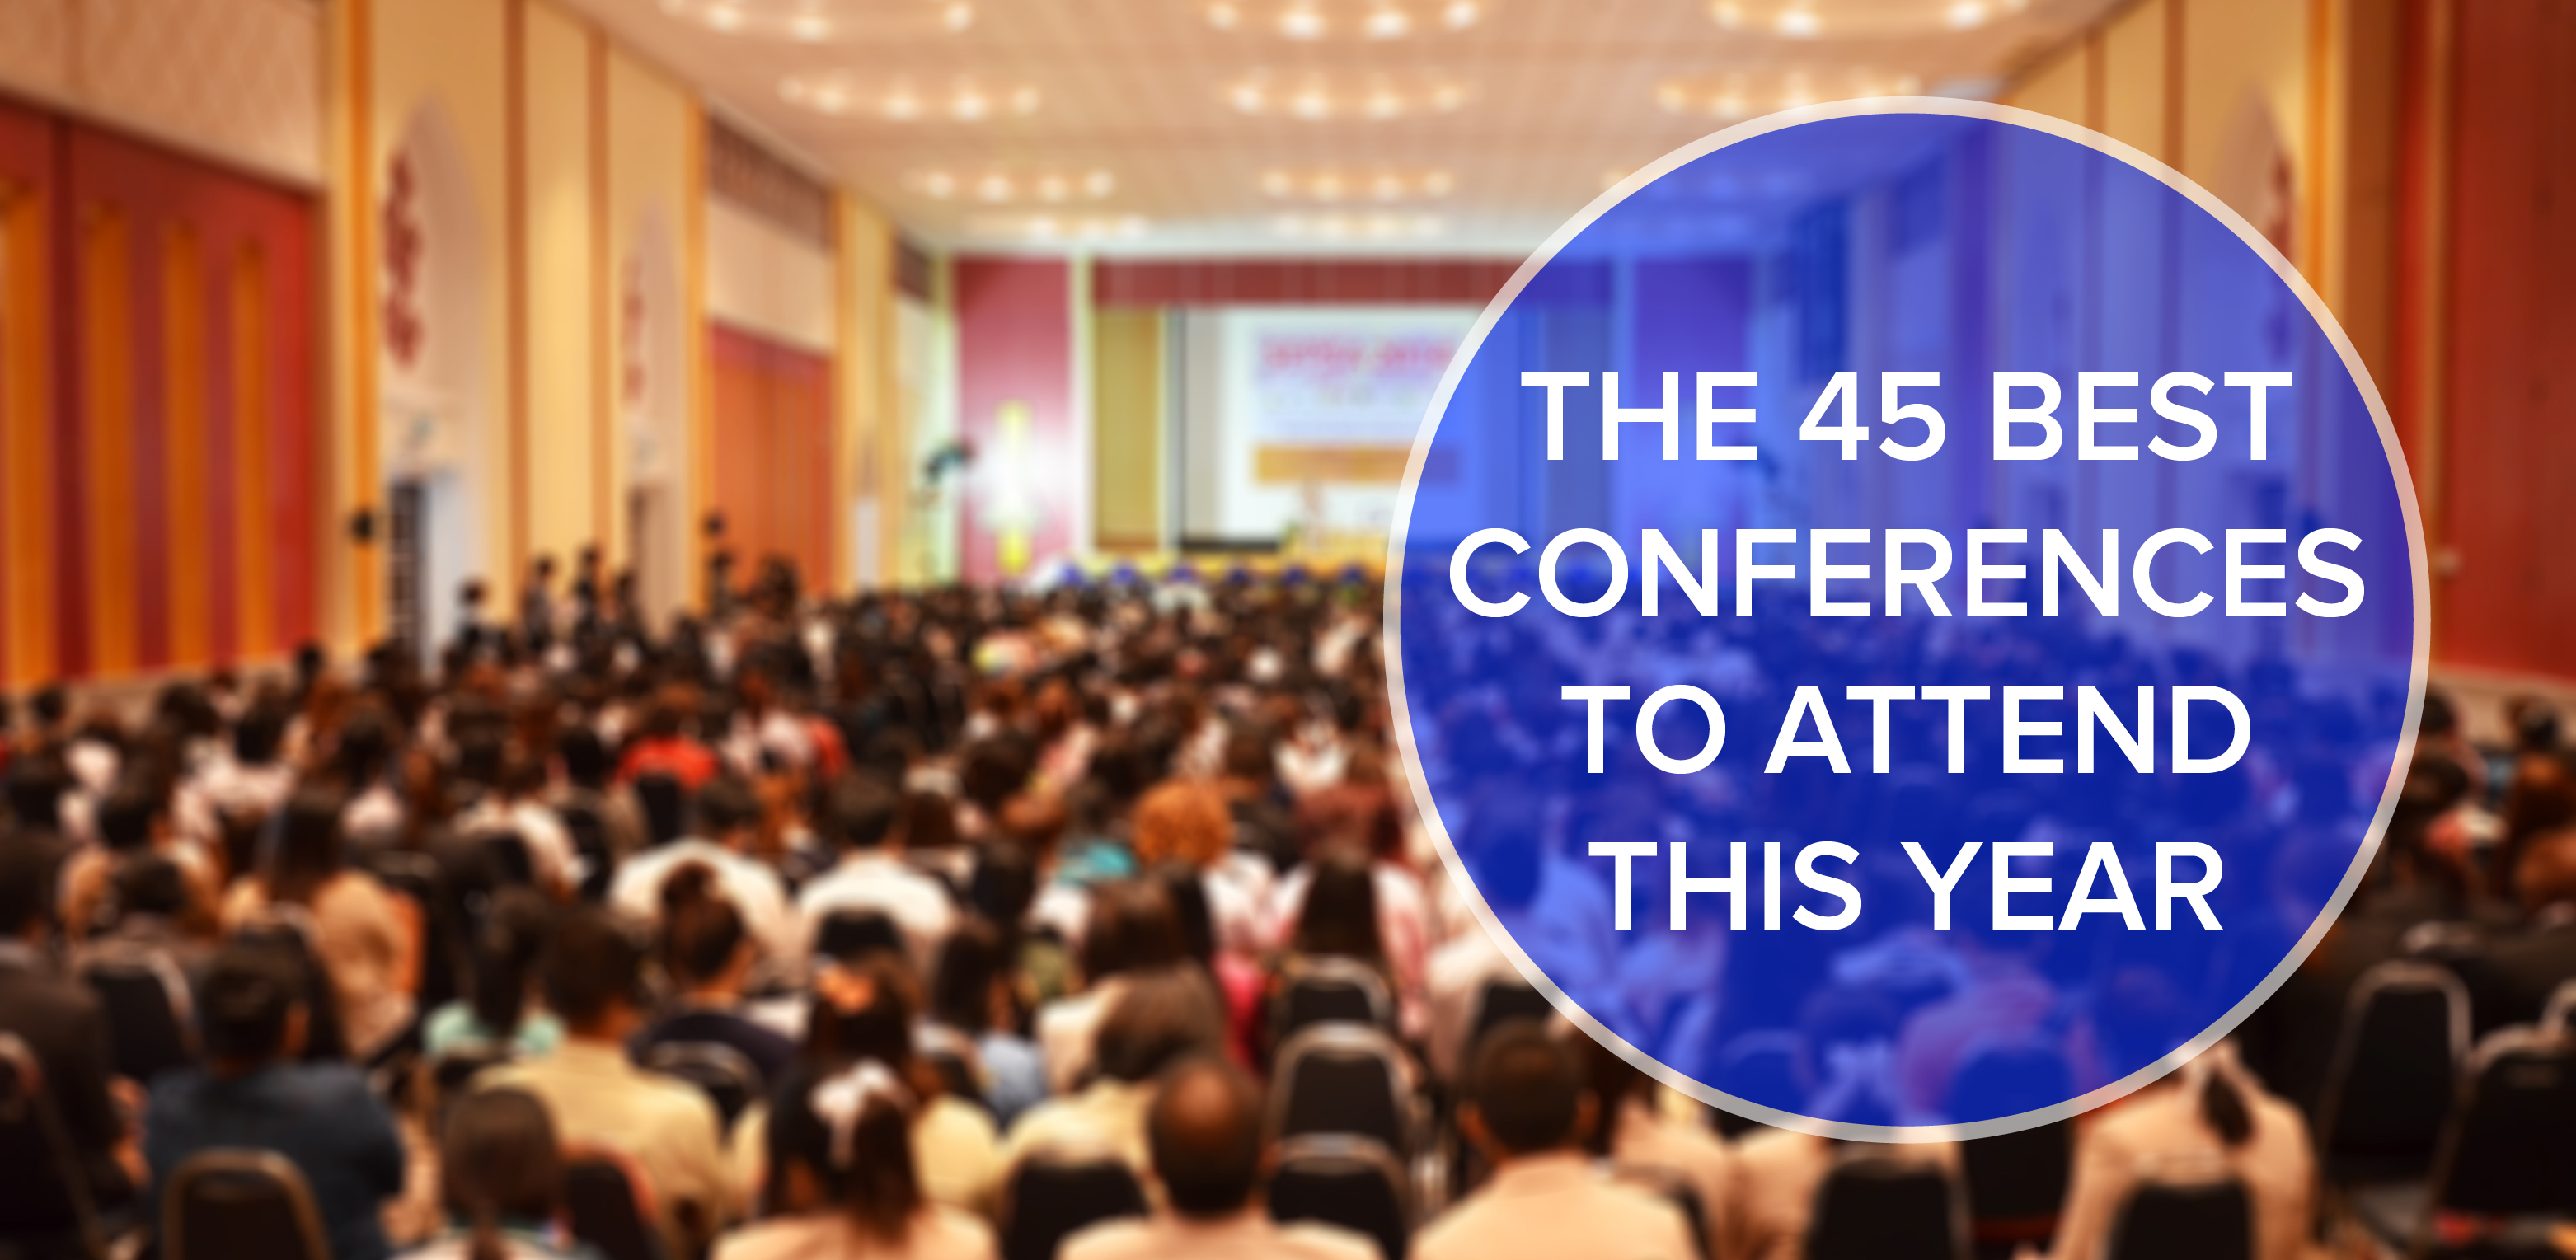 The 45 Best Conferences to Attend This Year